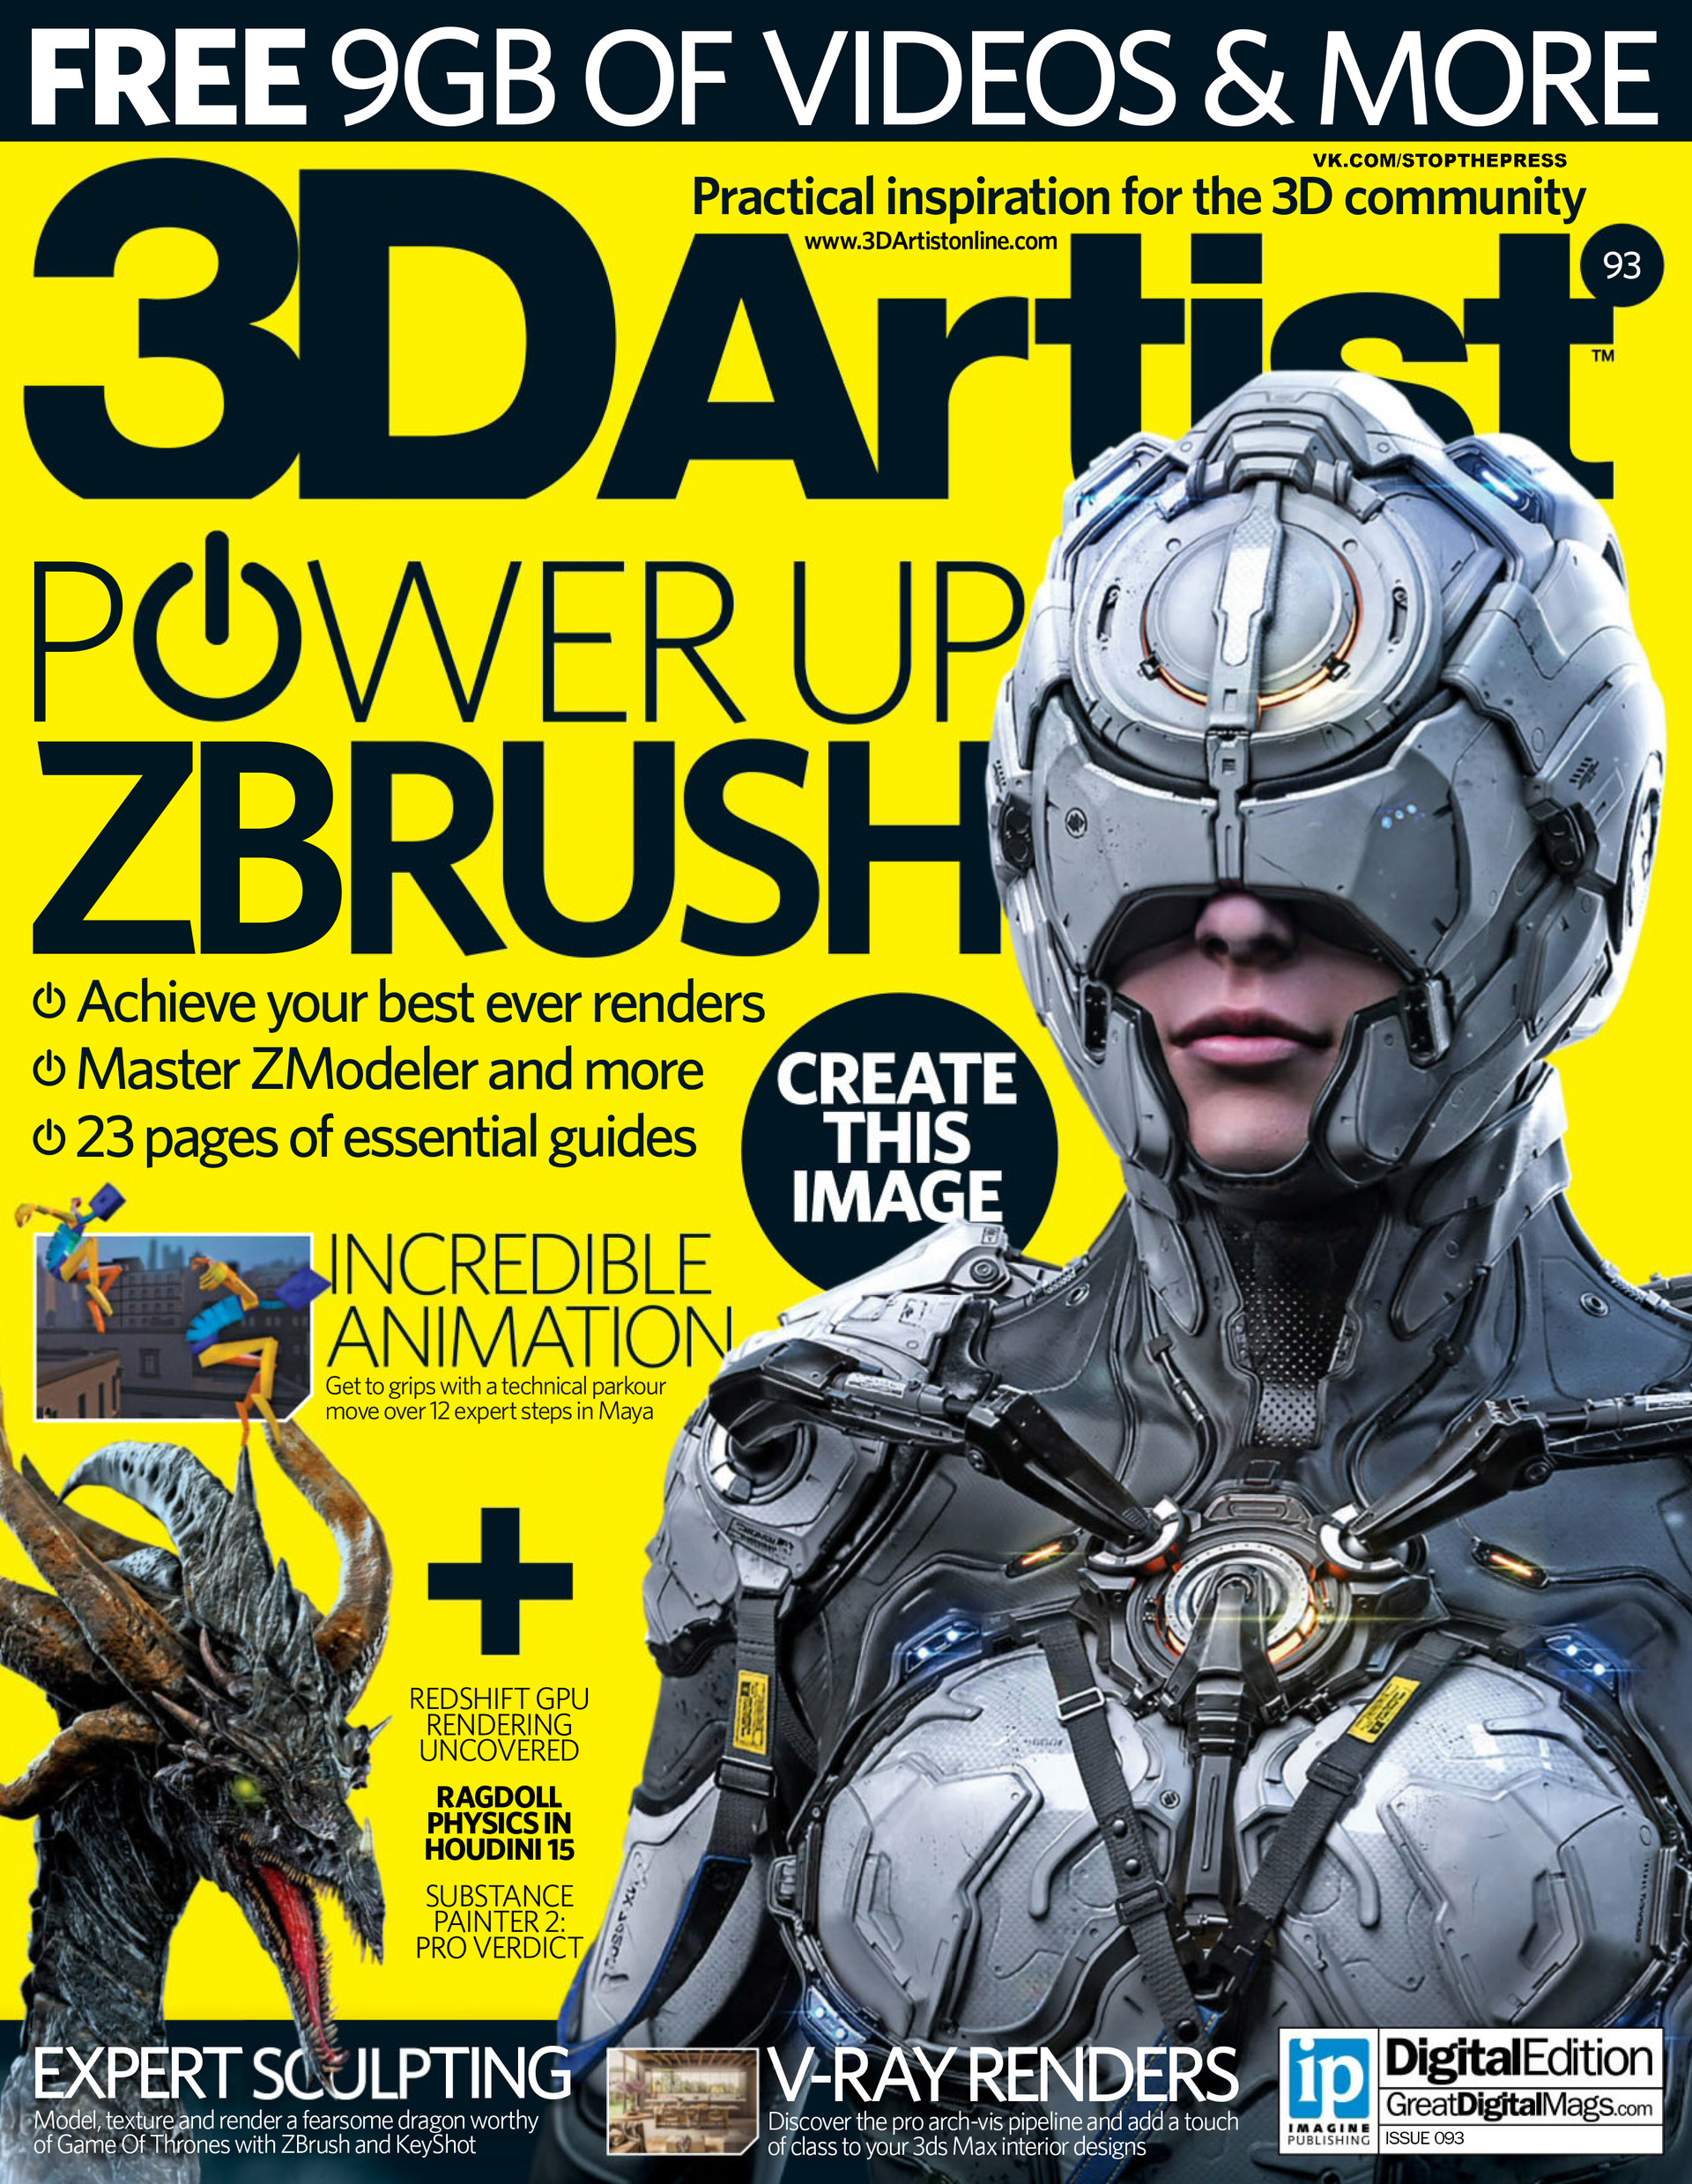 Wiktor ohman 3d artist issue 93